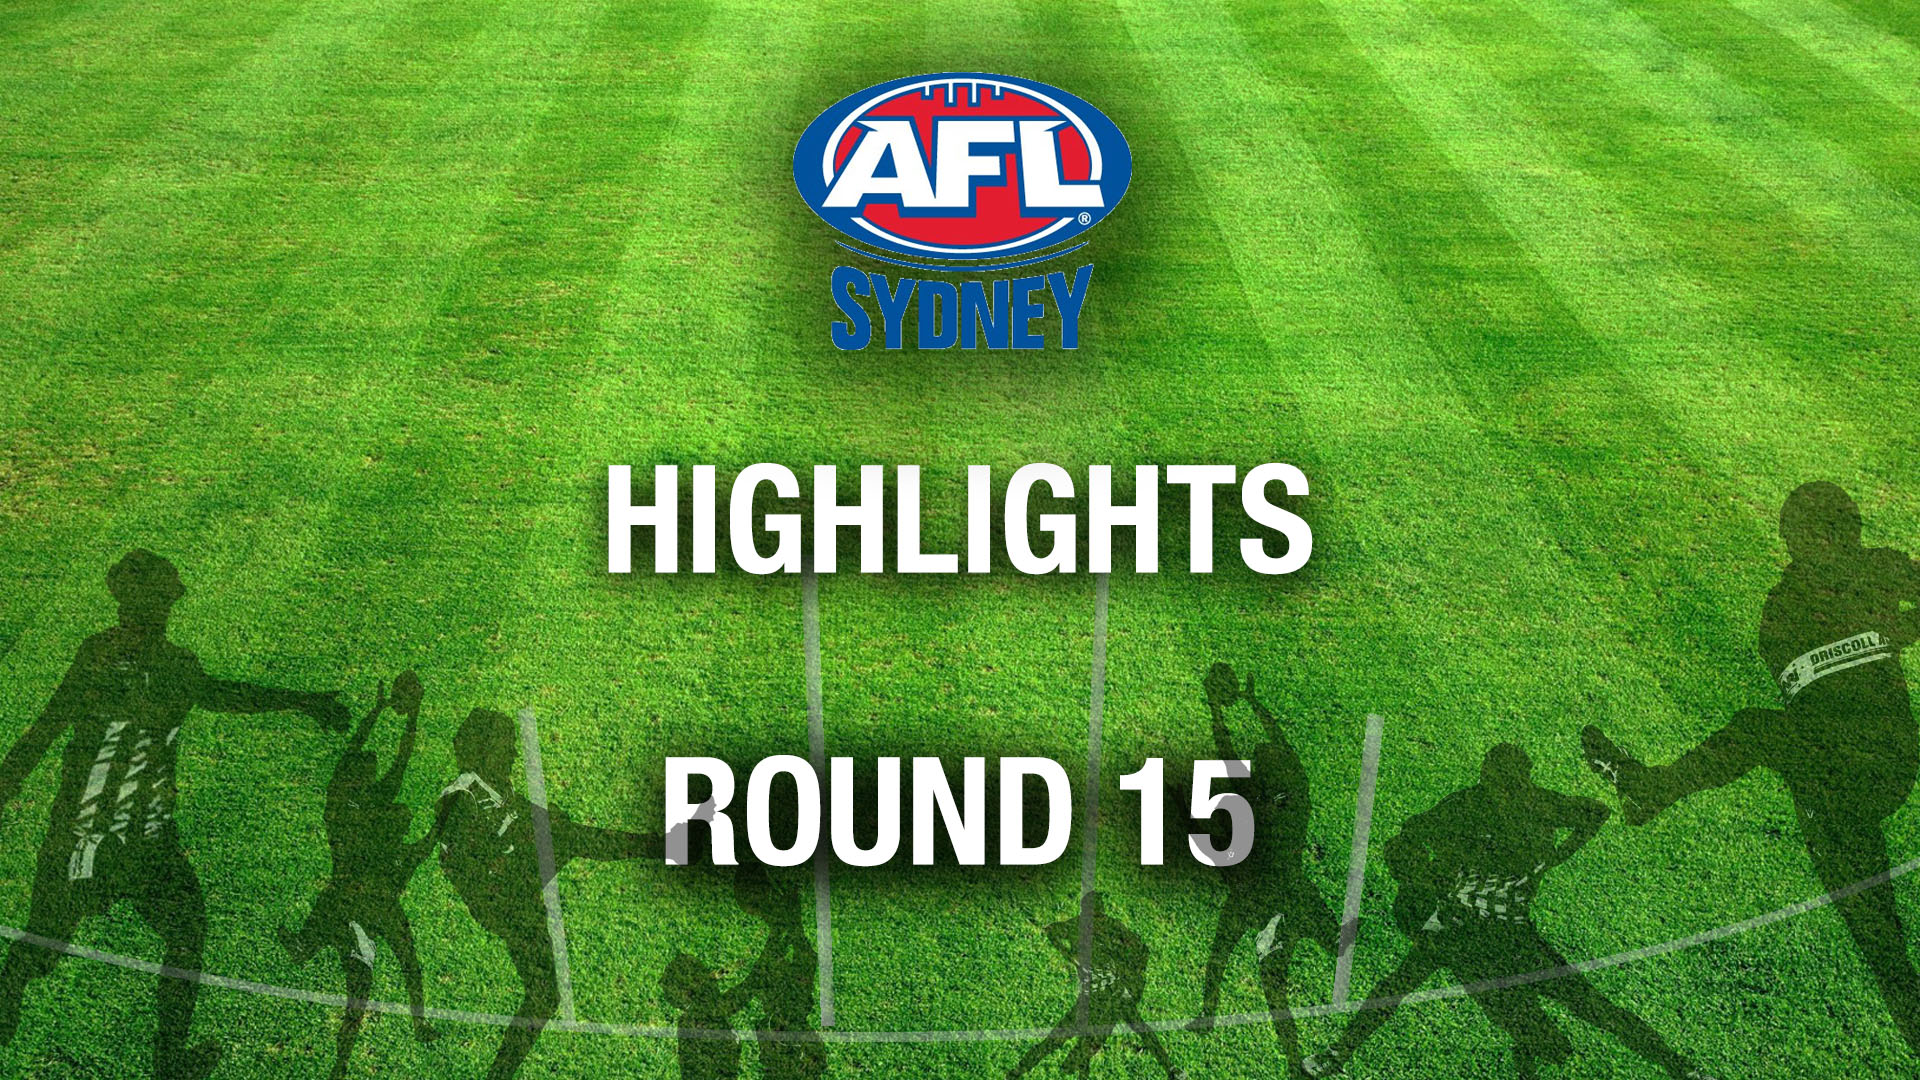 AFL SYDNEY 2018 RD15 HIGHLIGHTS